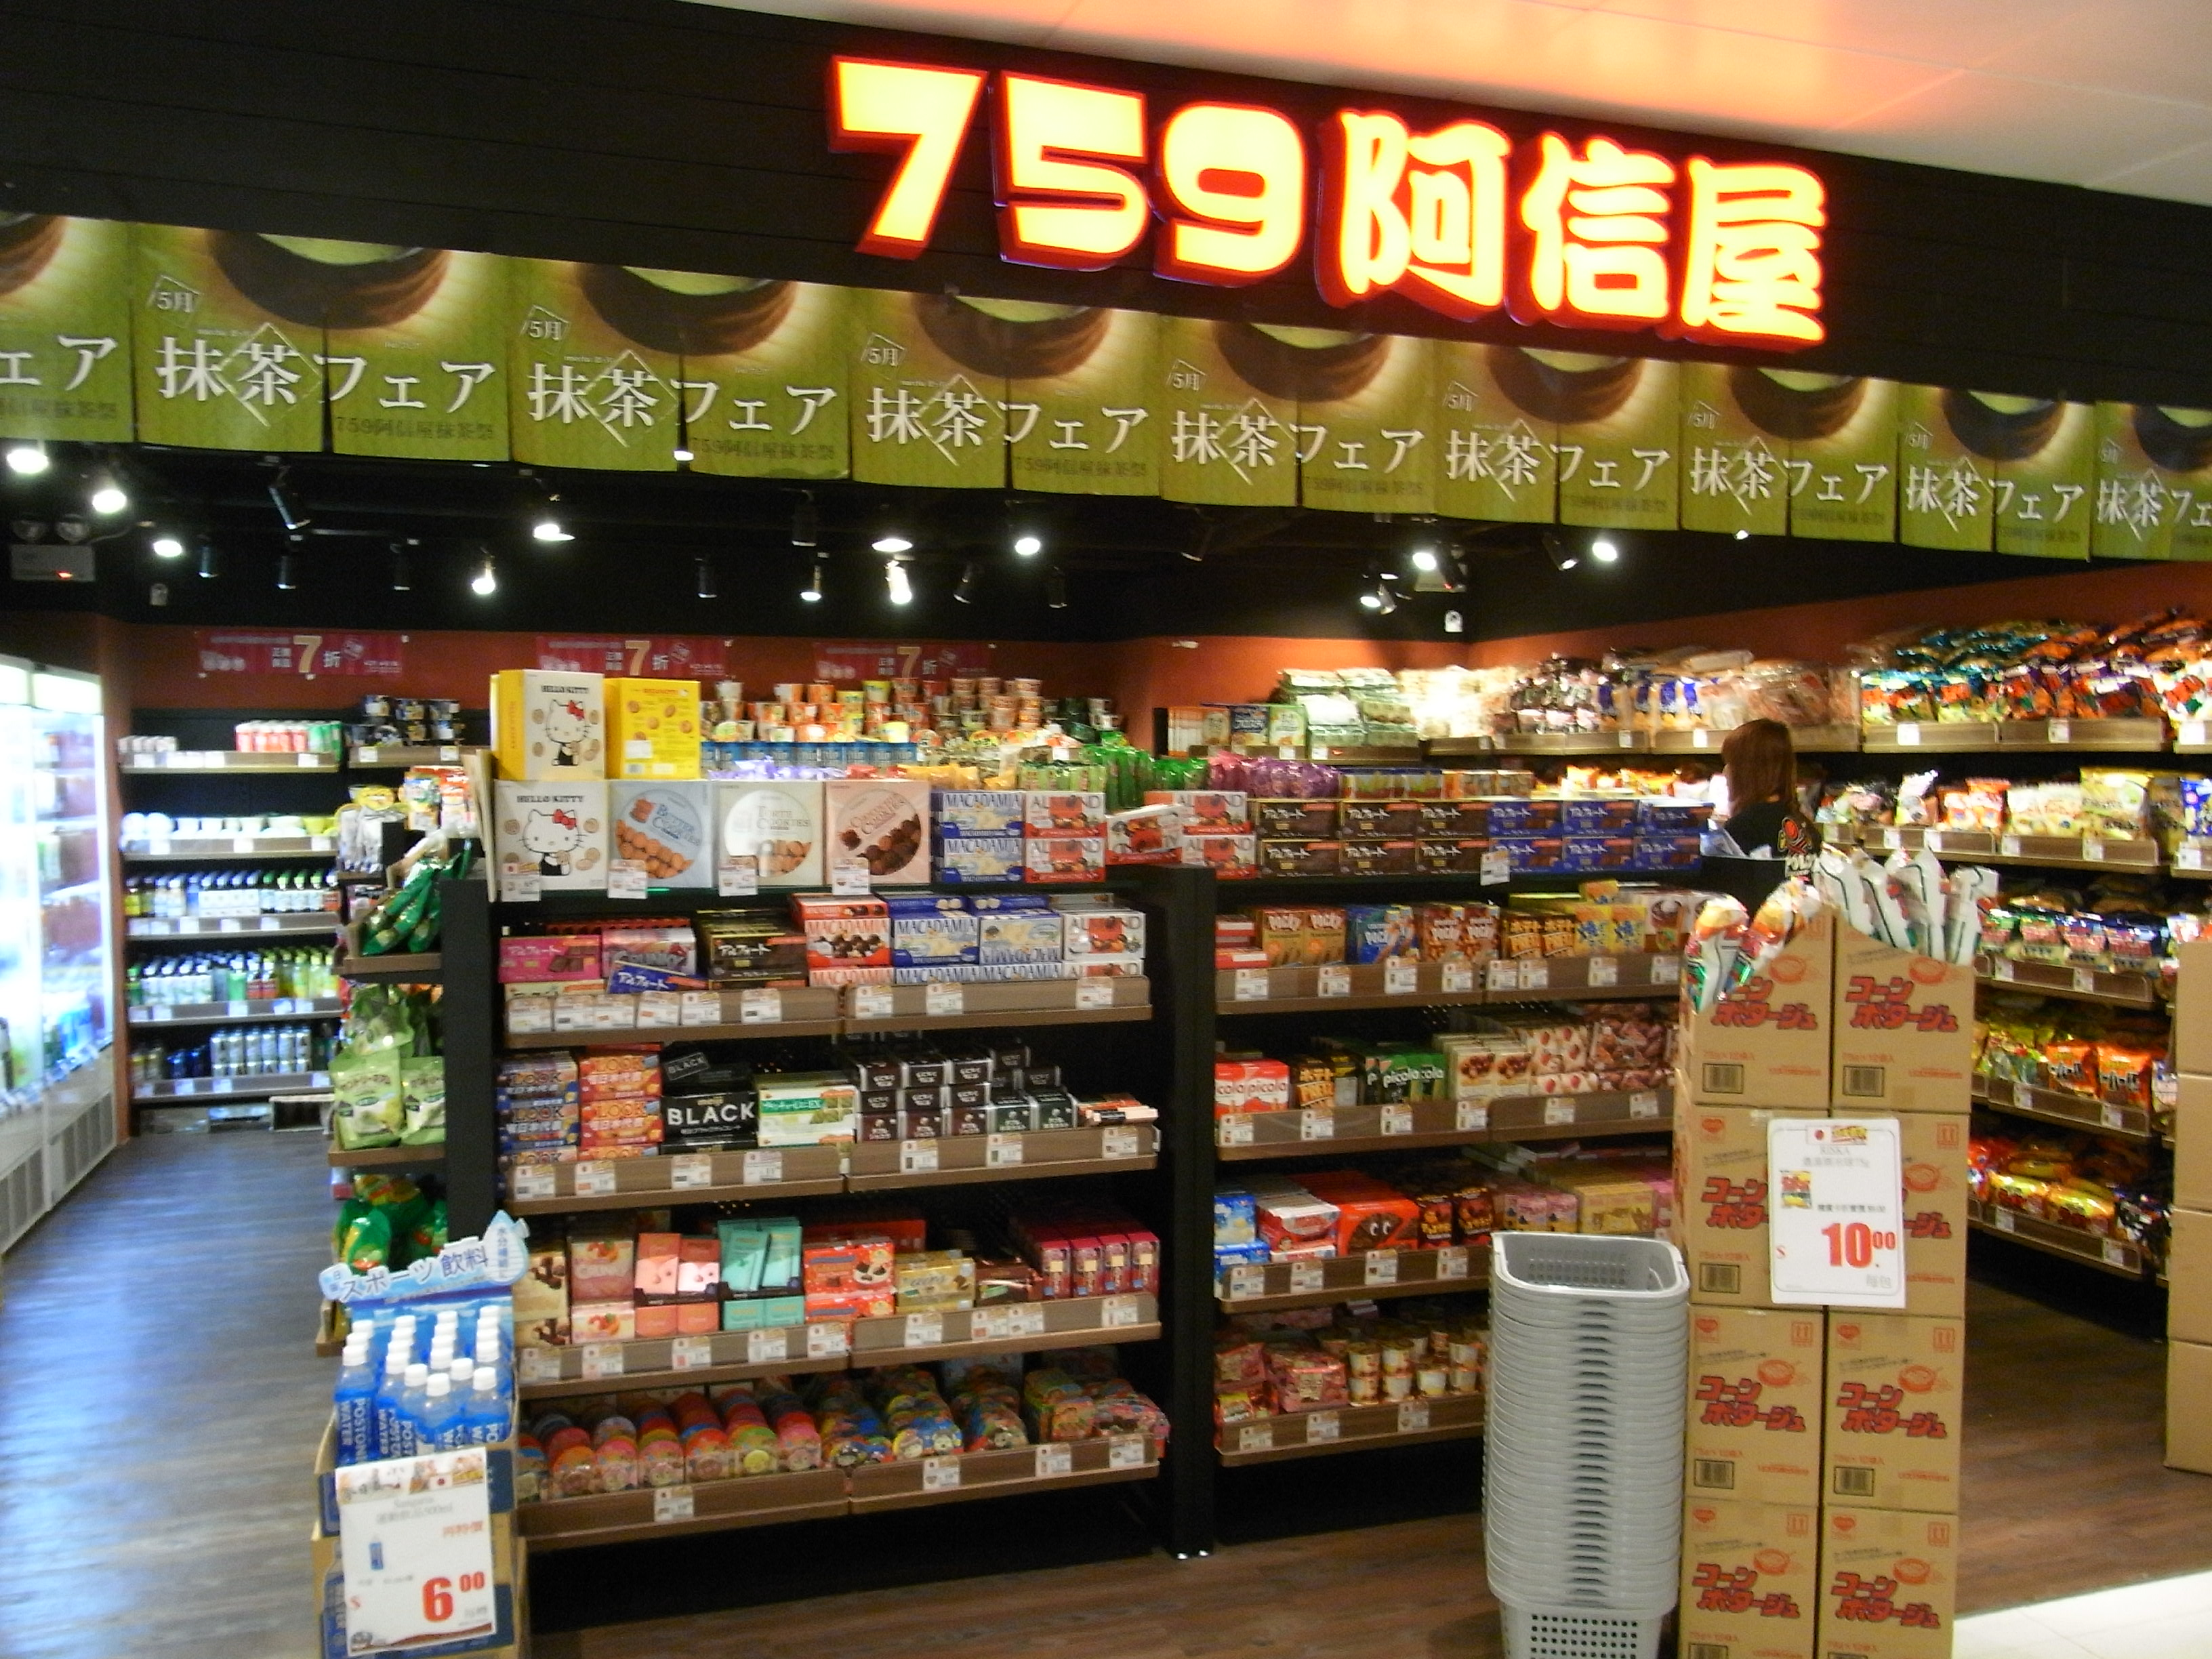 File:HK 北角 North Point 健威花園 Healthy Gardens shop 759 Store May-